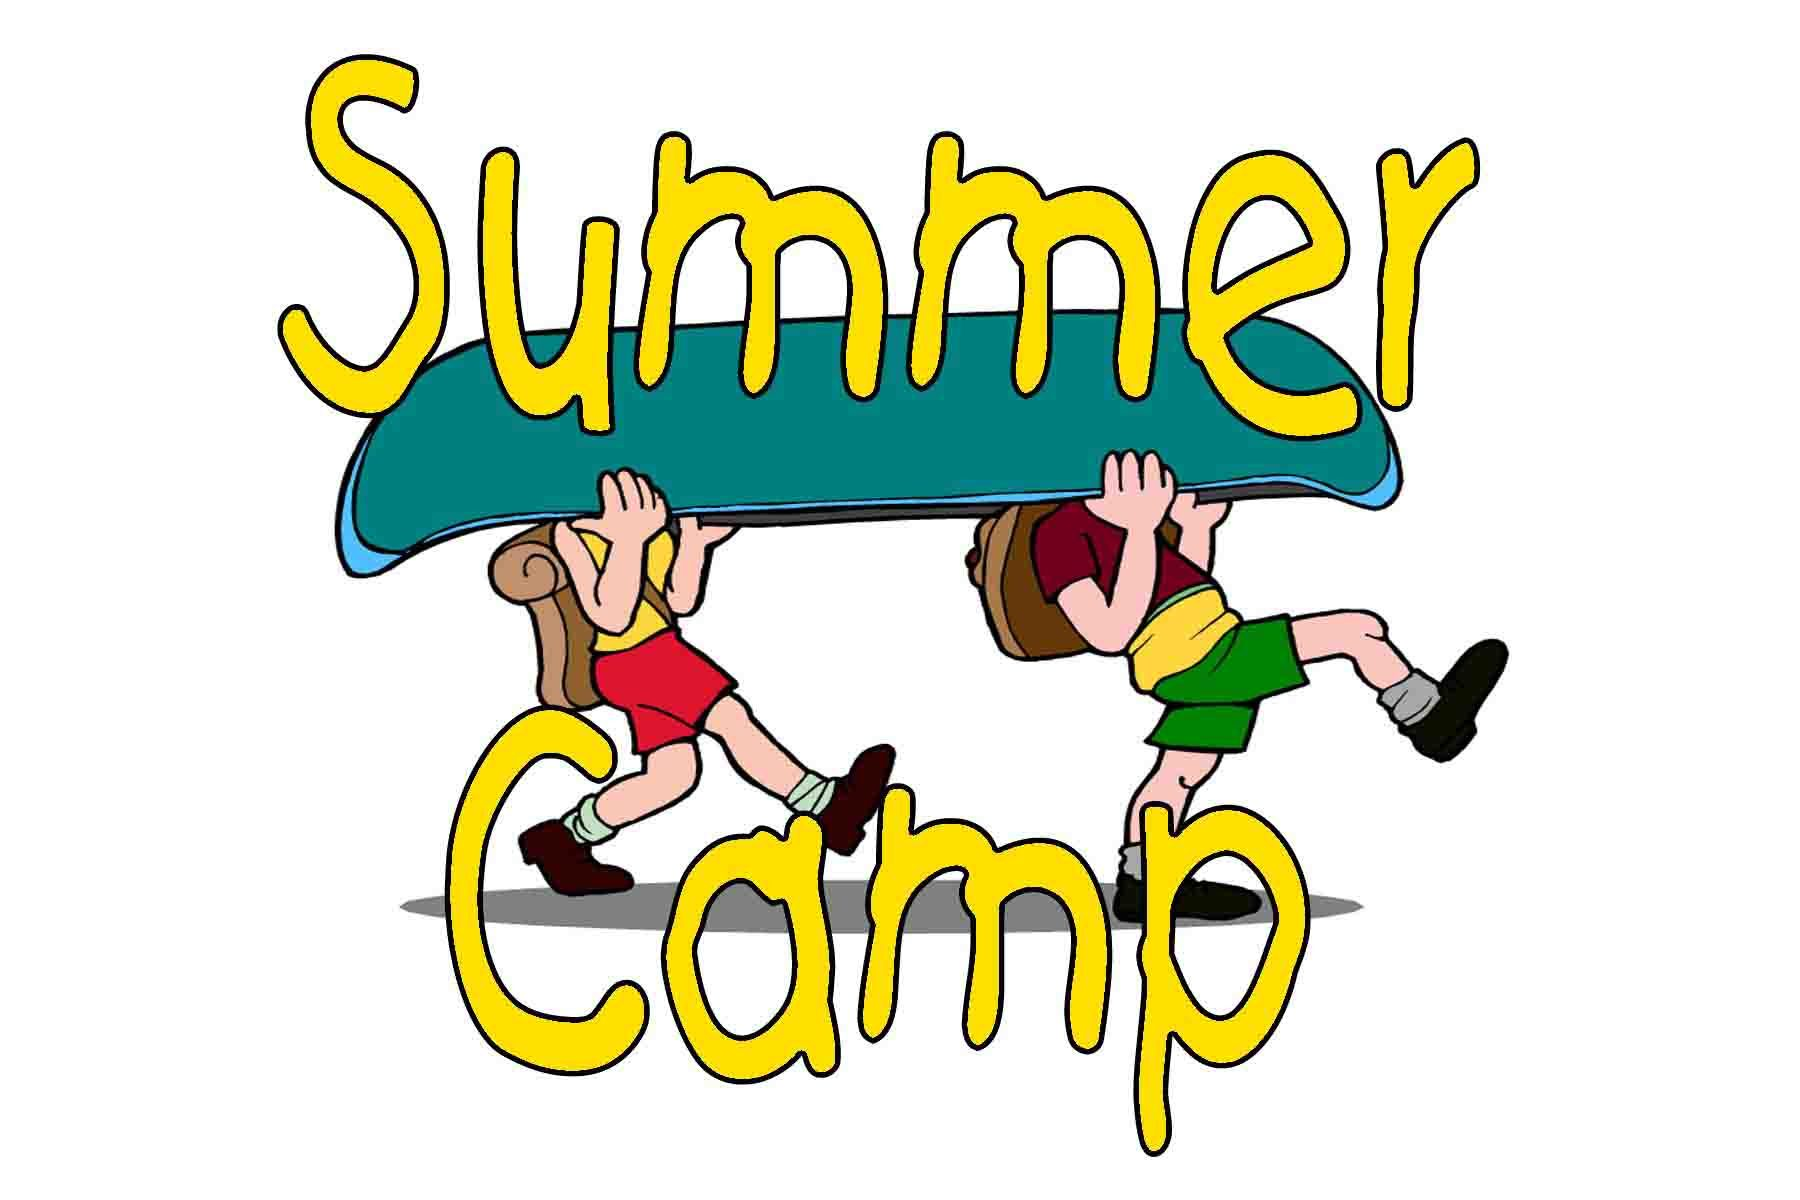 Day camp clipart 1 » Clipart Portal.